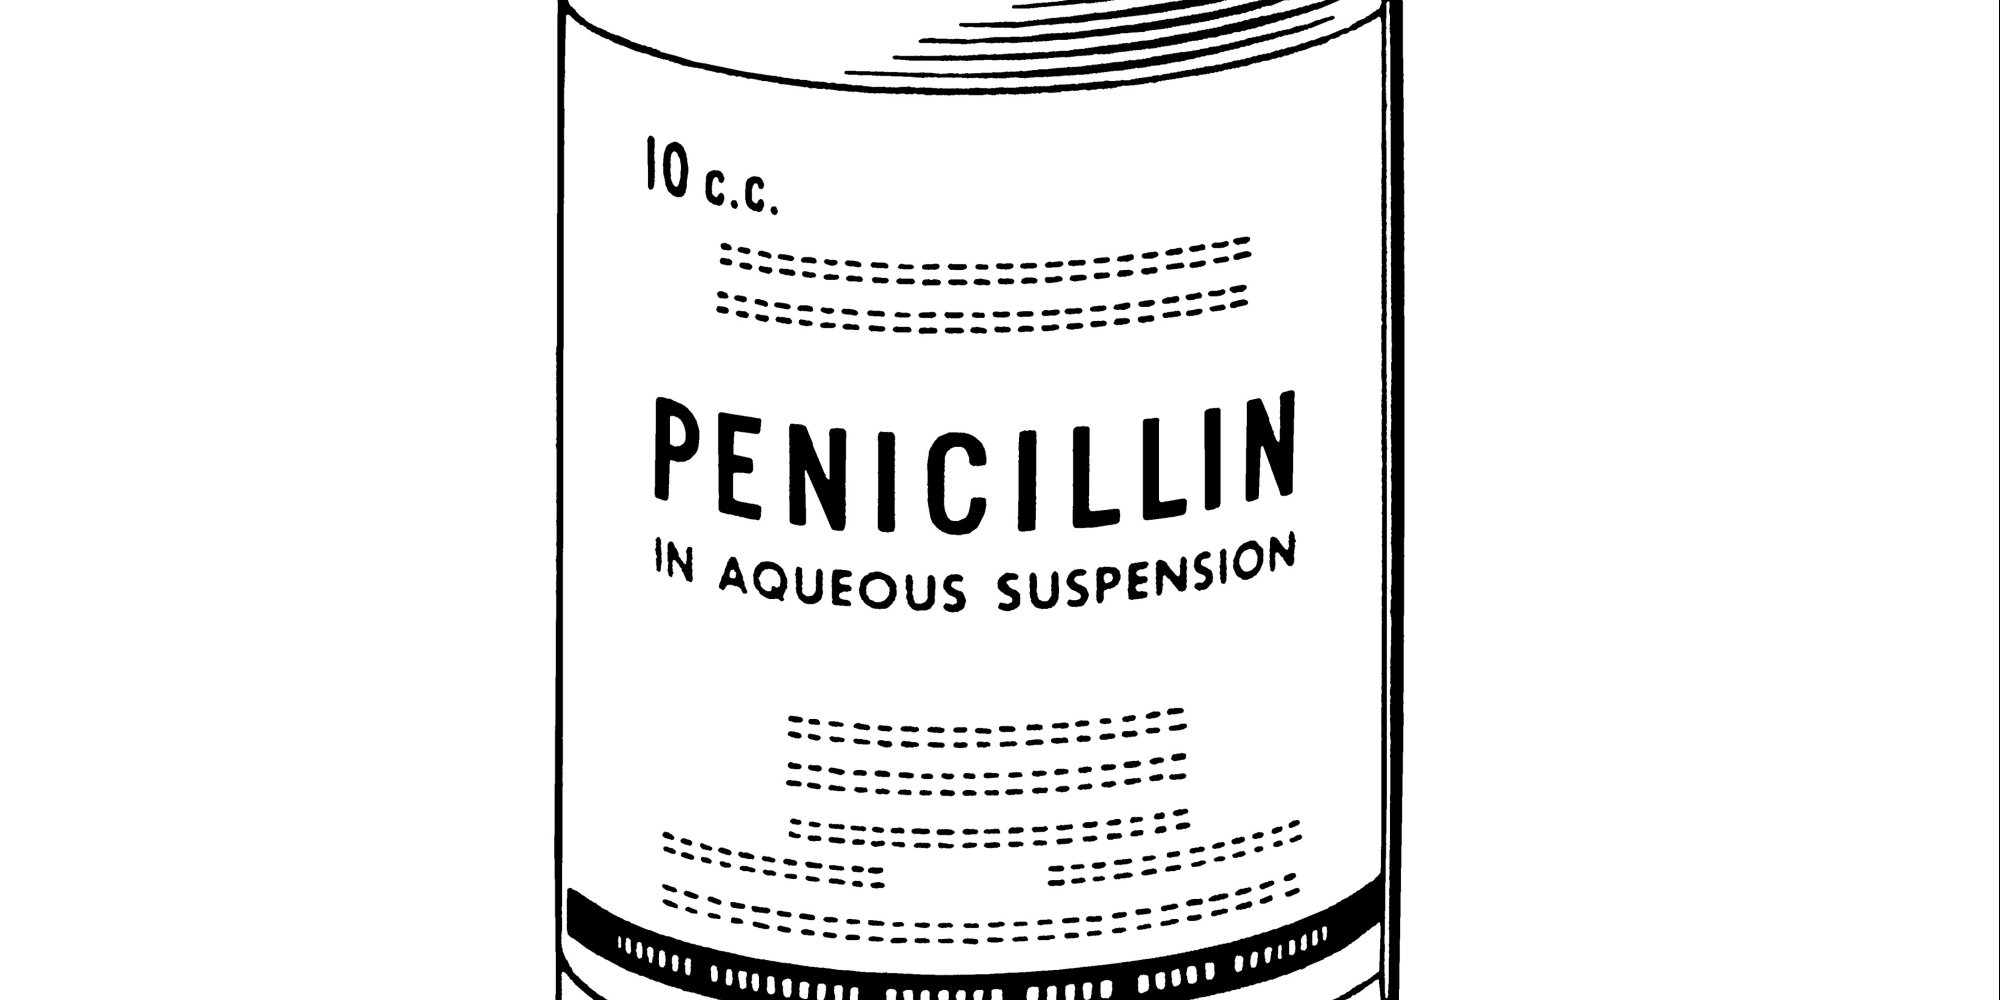 Letter Re: Doxycycline and Penicillin